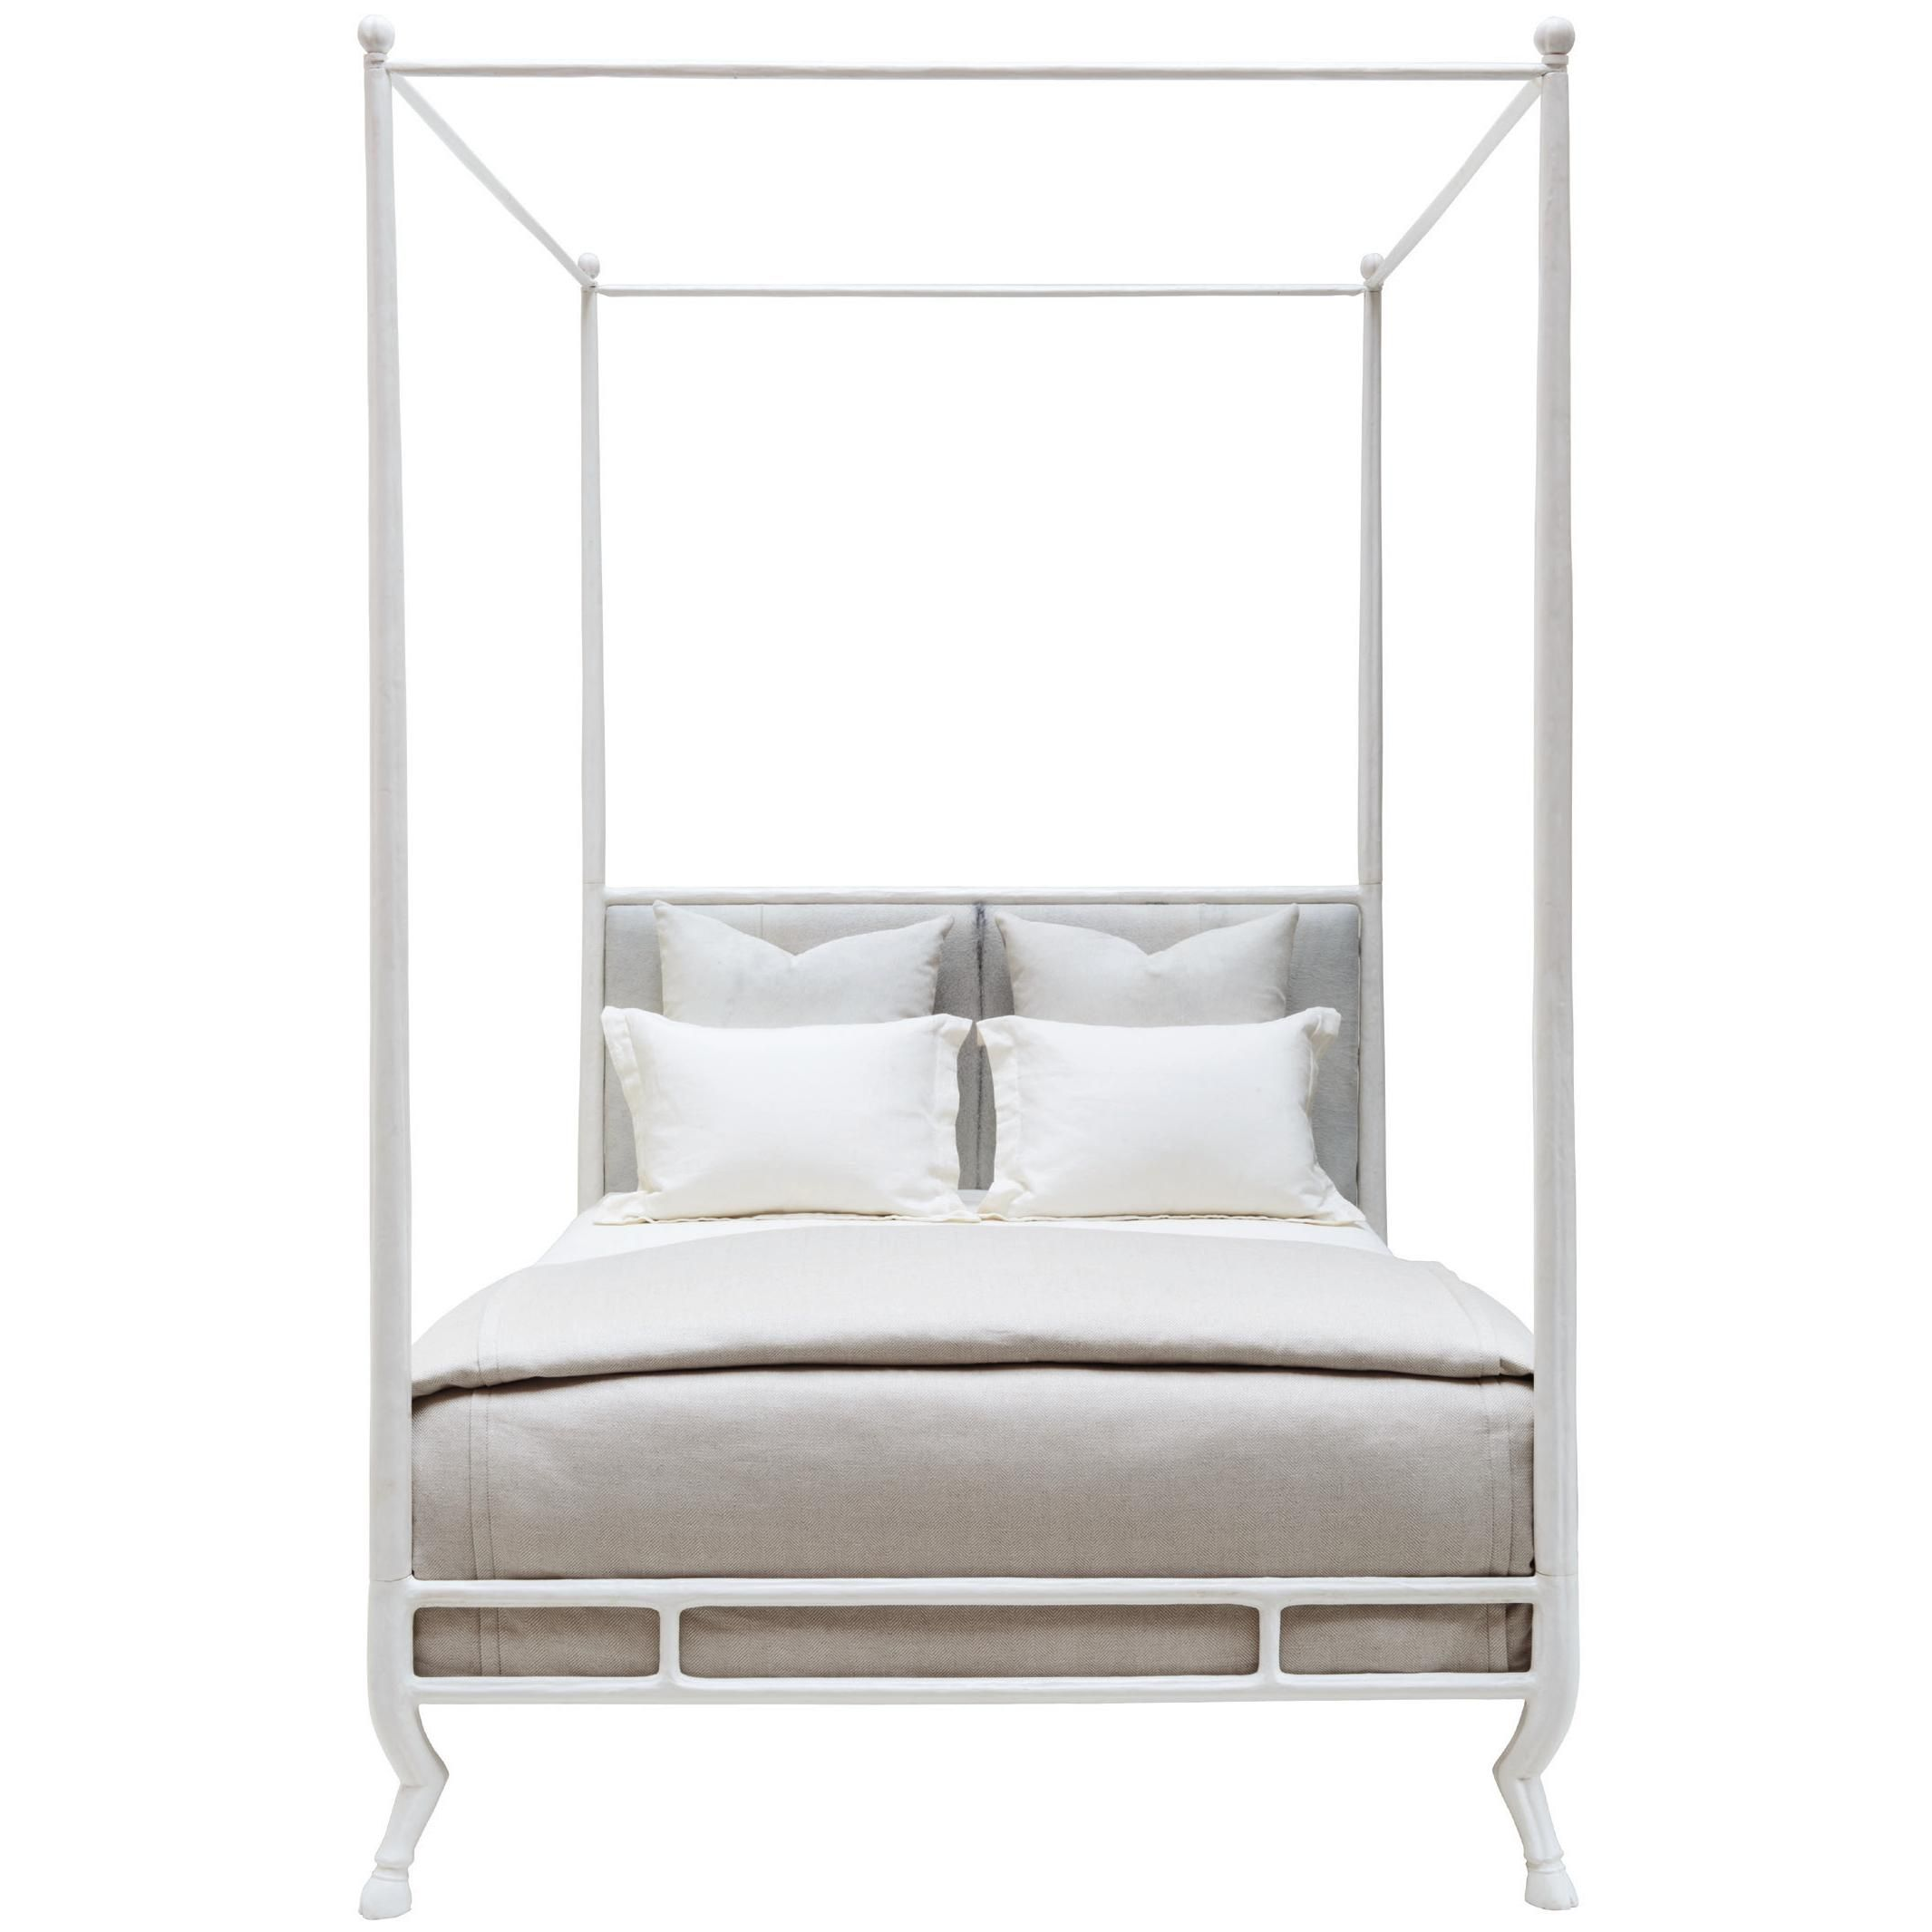 Oly Studio Faline Bed Oly Studio Faline Bed Candelabra Inc White Metal Bed Cal King Bedding Wood And Upholstered Bed